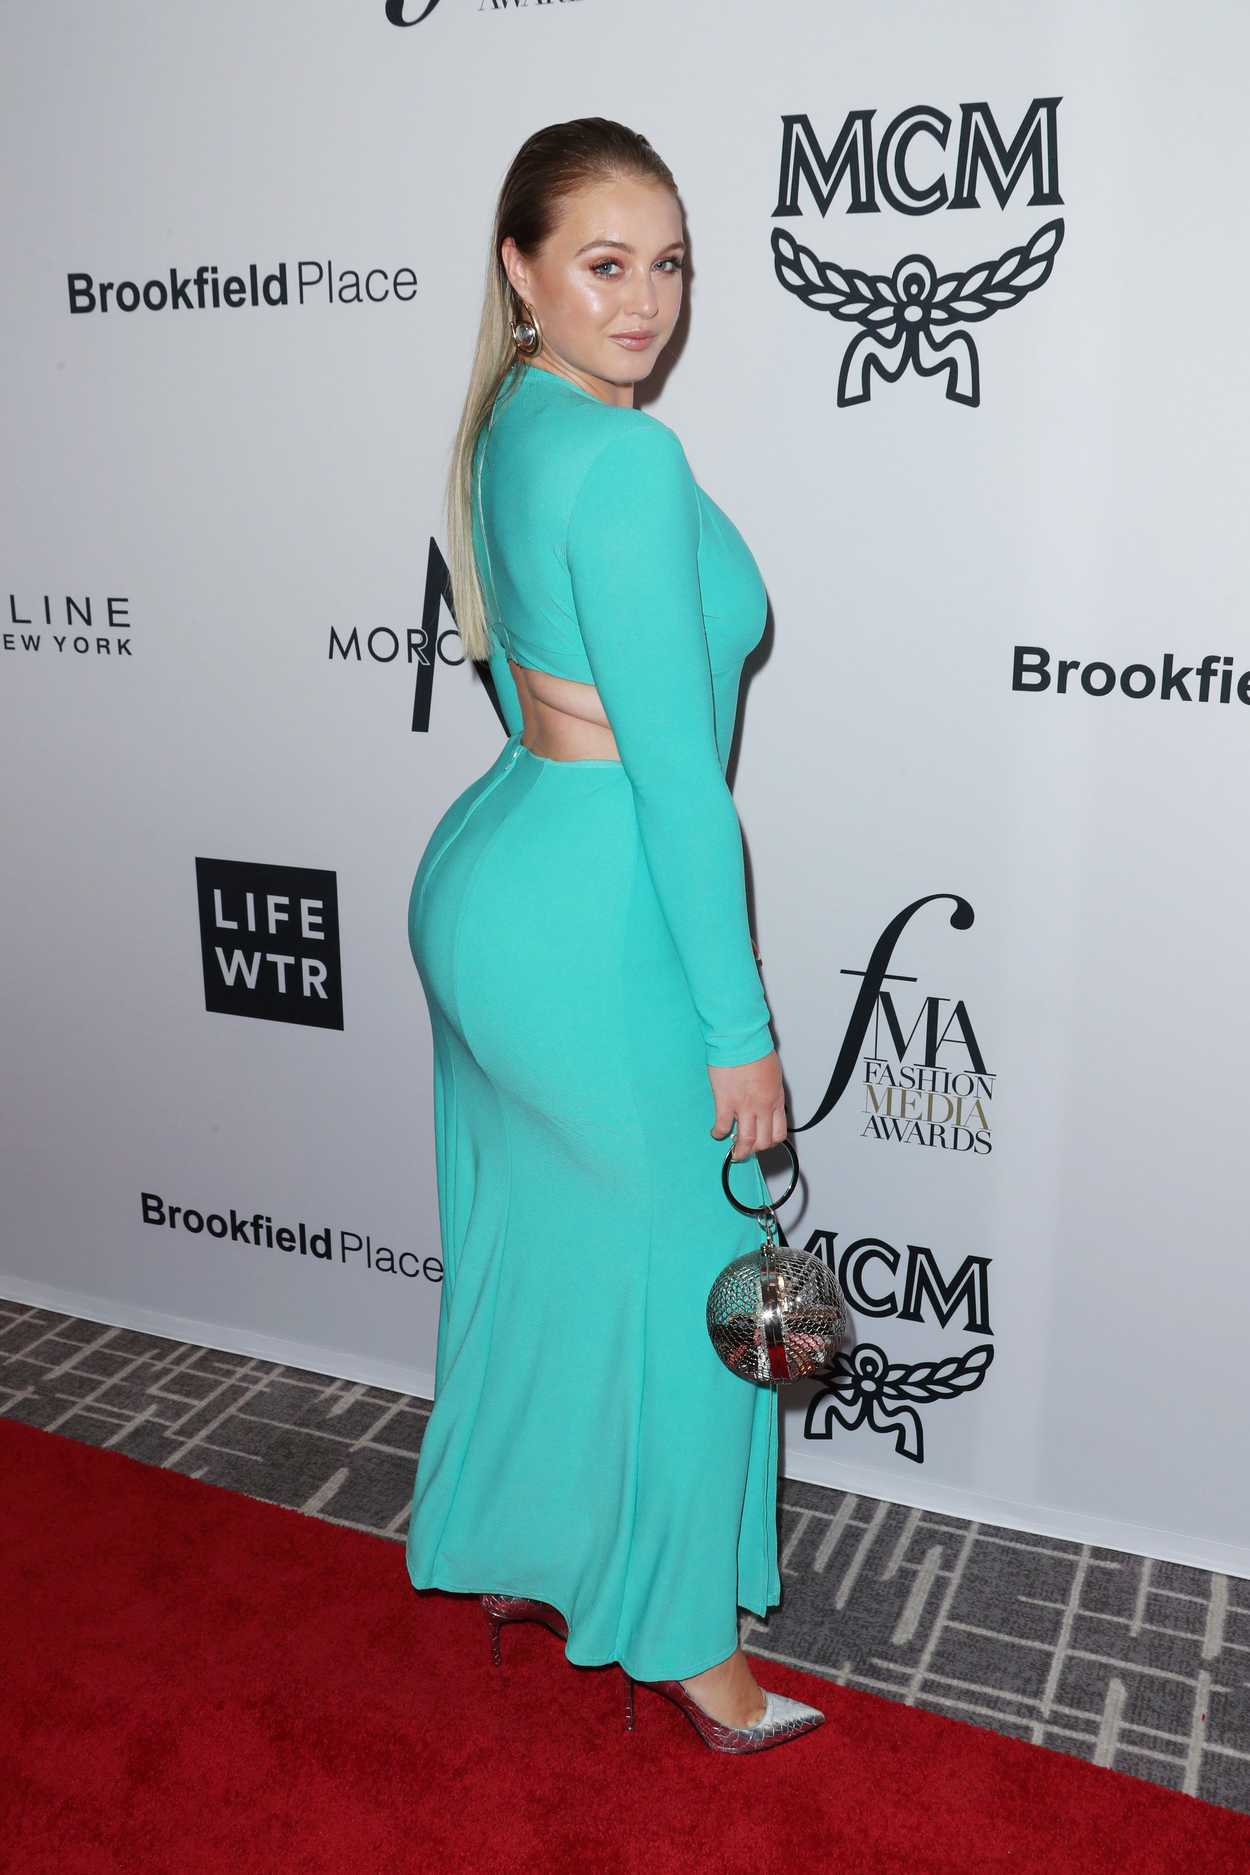 Iskra Lawrence At Daily Front Row Fashion Awards During New York Fashion Week 09 08 2017